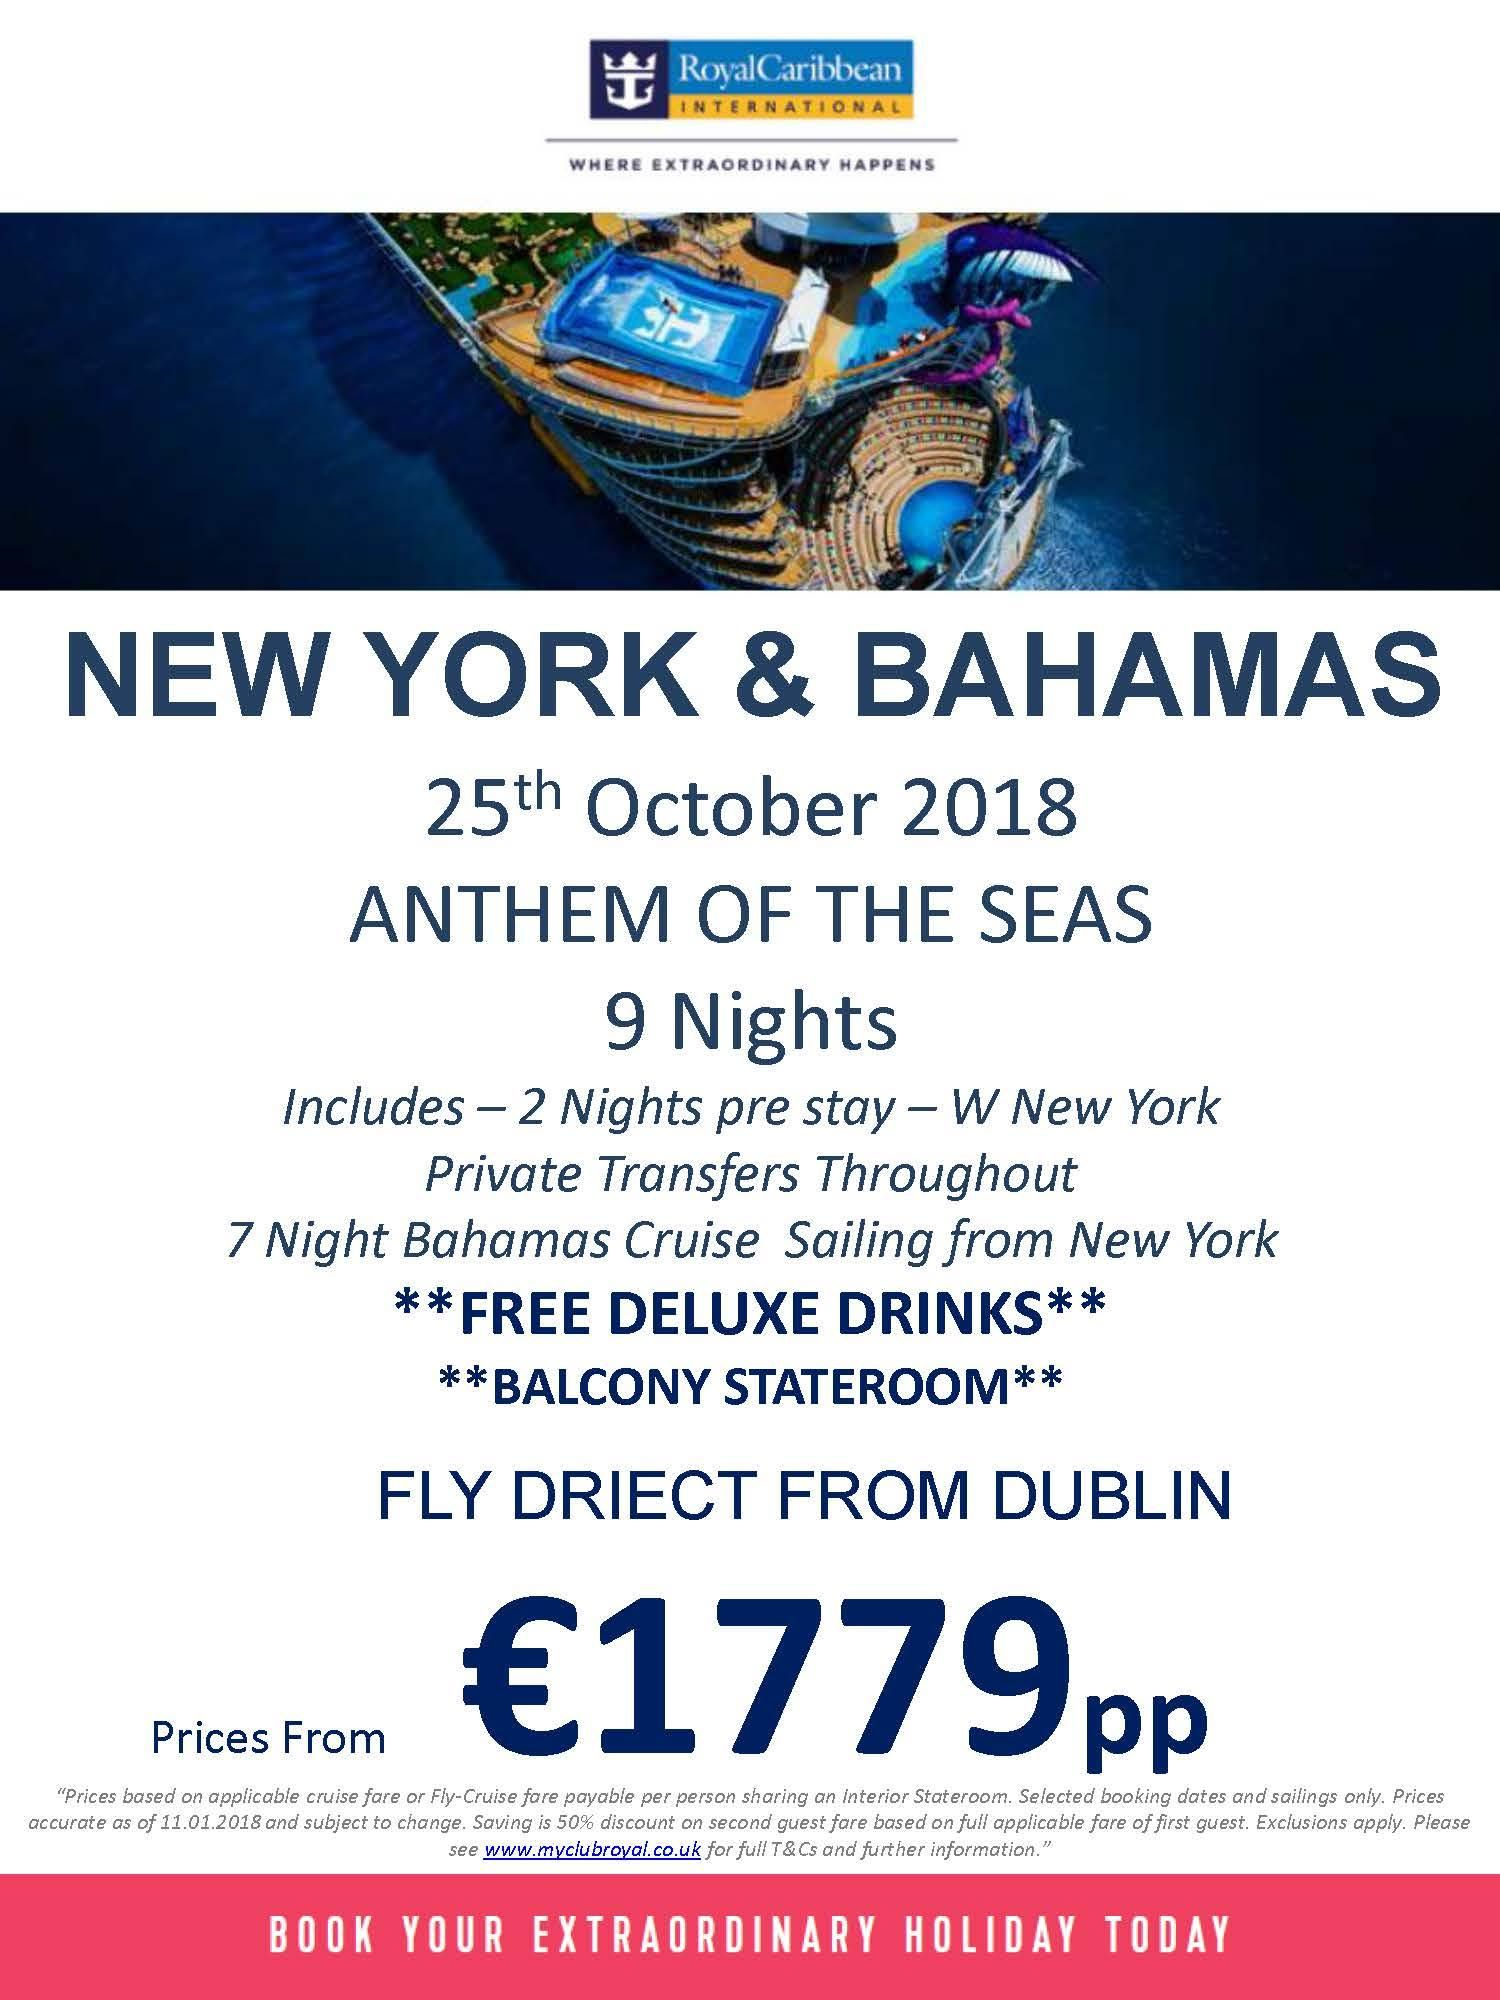 And the DEAL OF THE WEEK title goes to the NEW YORK & BAHAMAS offer from Royal Caribbean International Limited availability catch it while yo…